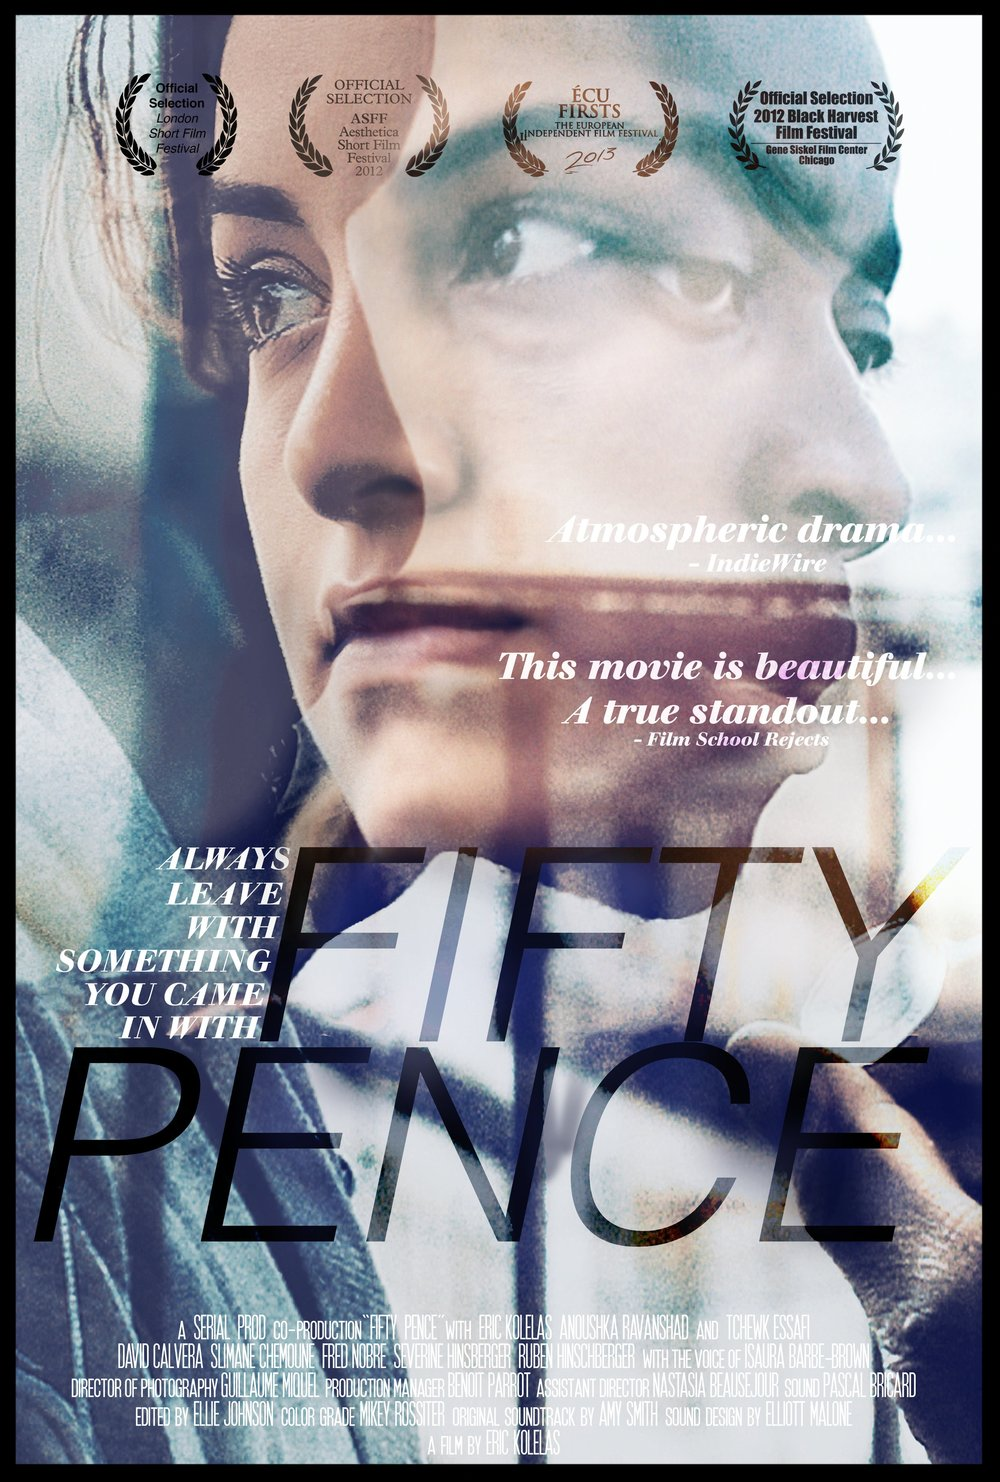 FIFTY PENCE - 13mins | Drama | UK/FranceDarren, a keen gambler, finds himself having to escort an unknown woman to the other side of Paris for a Mafioso. Struggling with the implications of his involvement in the affair, Darren is forced to reconsider his values.